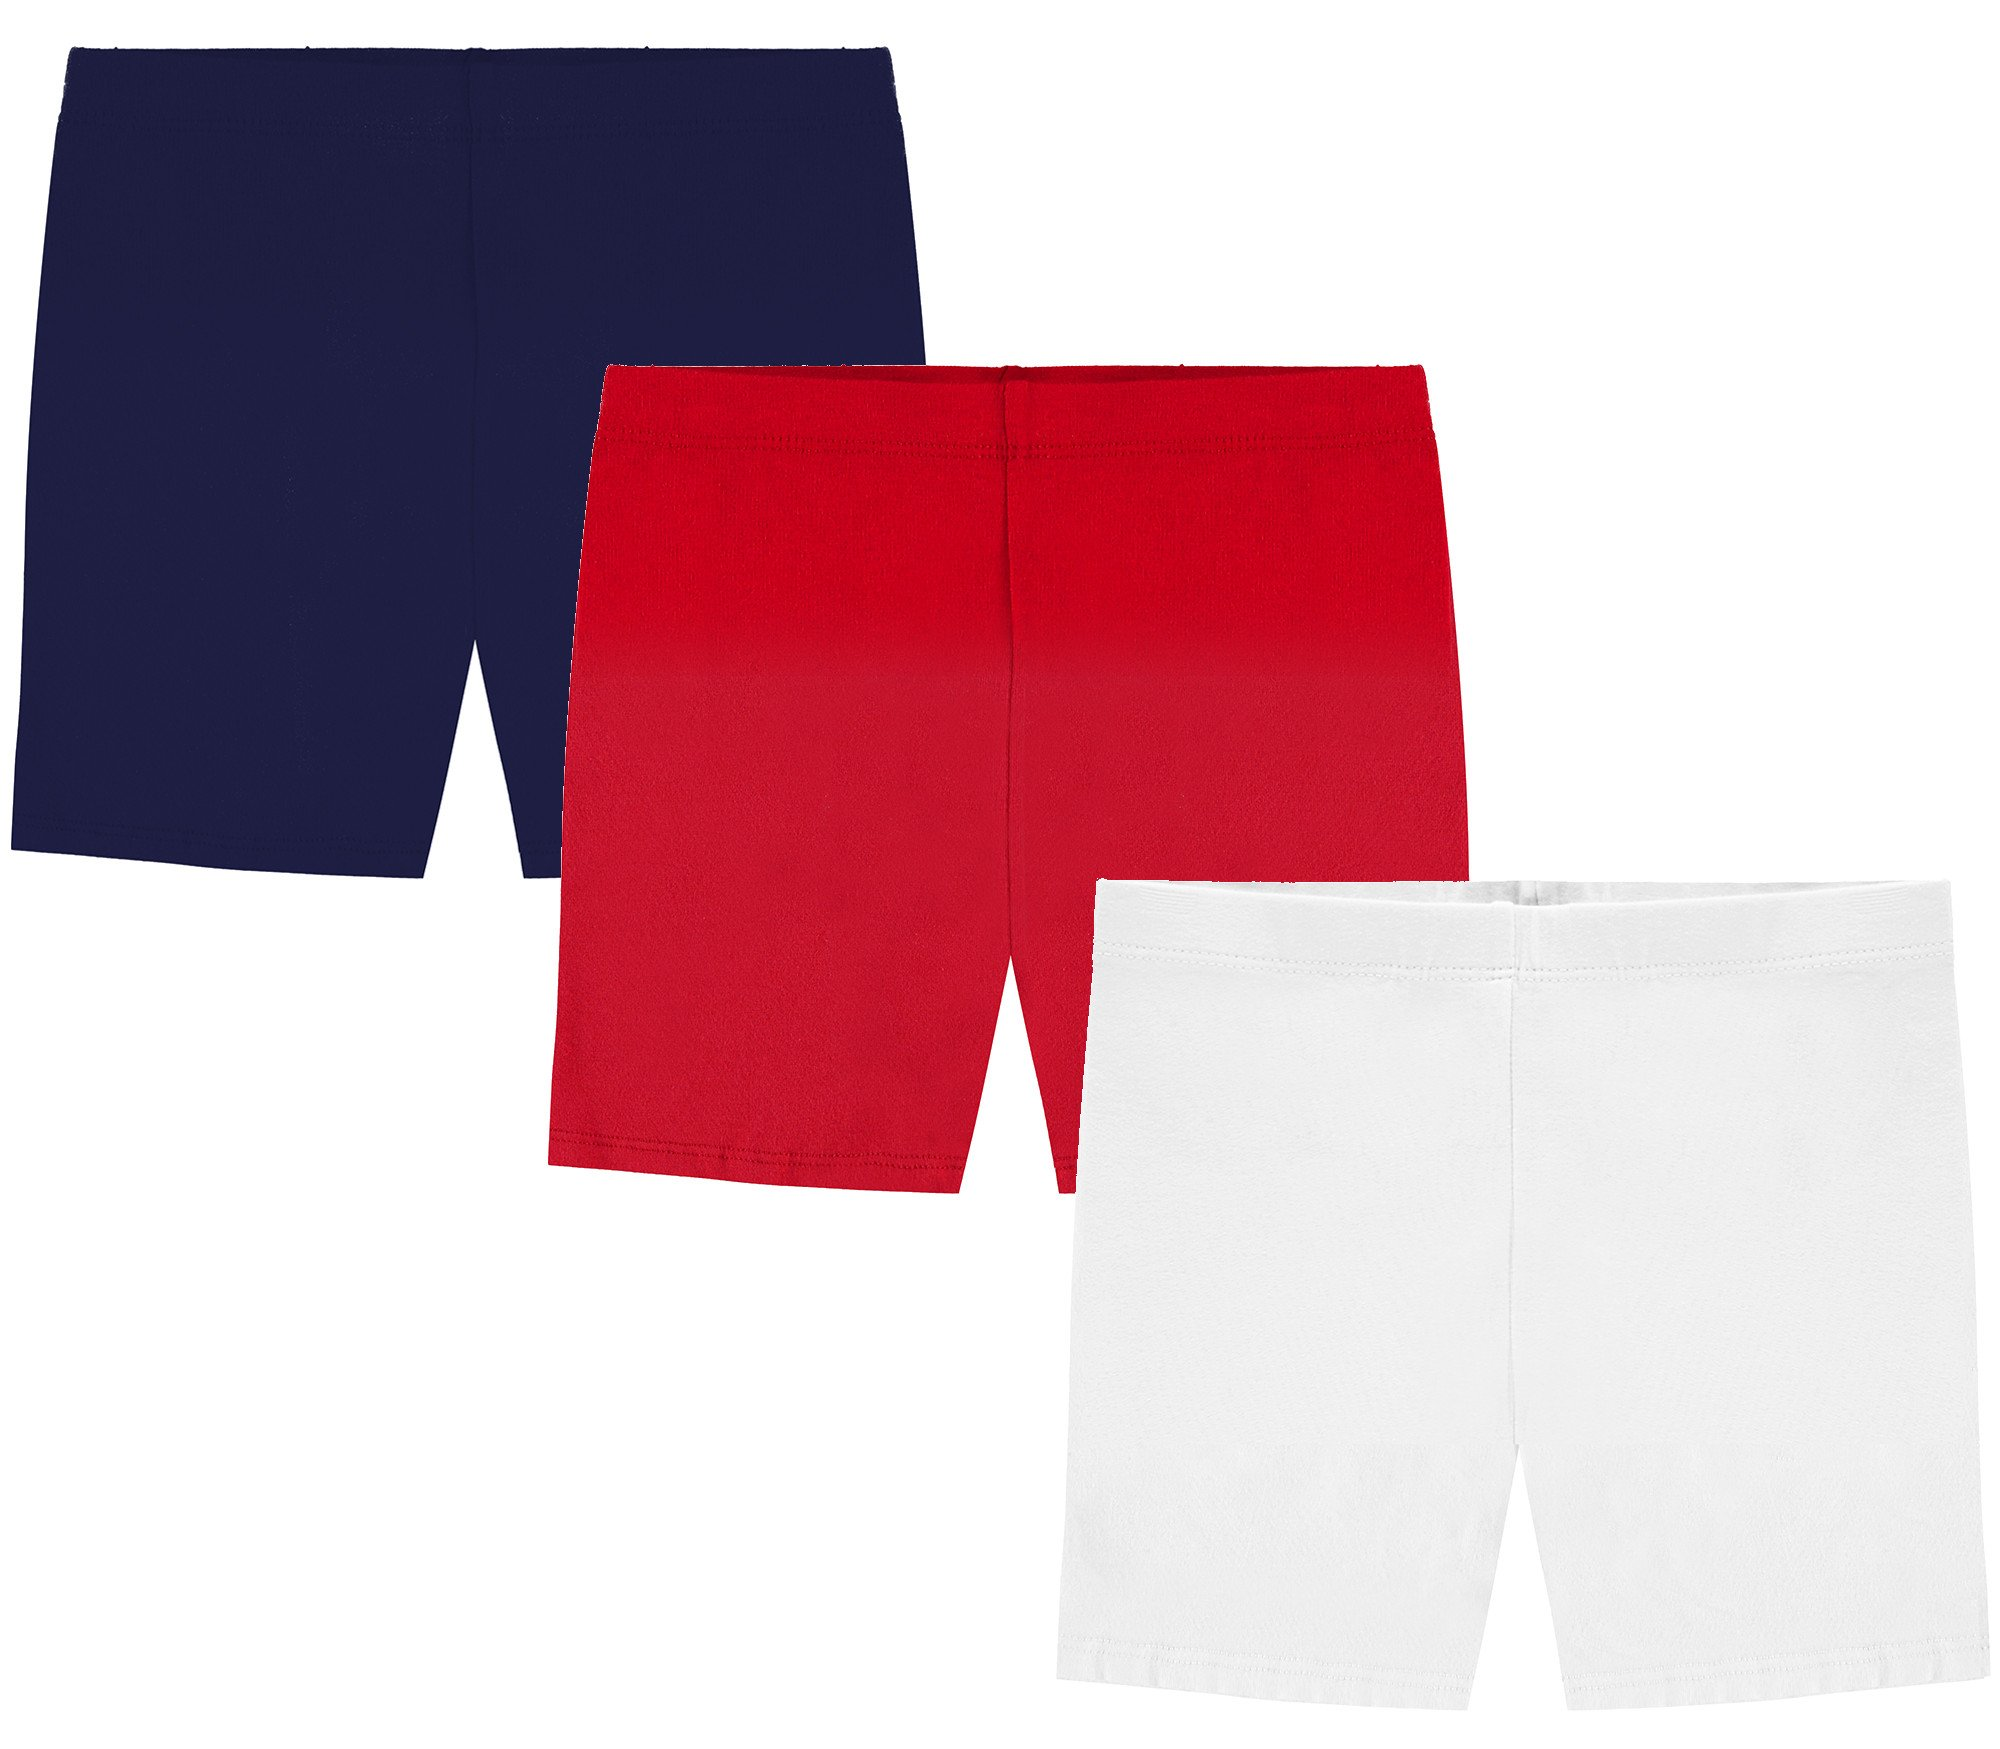 My Way Girls' Value Pack Solid Cotton Bike Shorts - Navy, Red, and White - 8